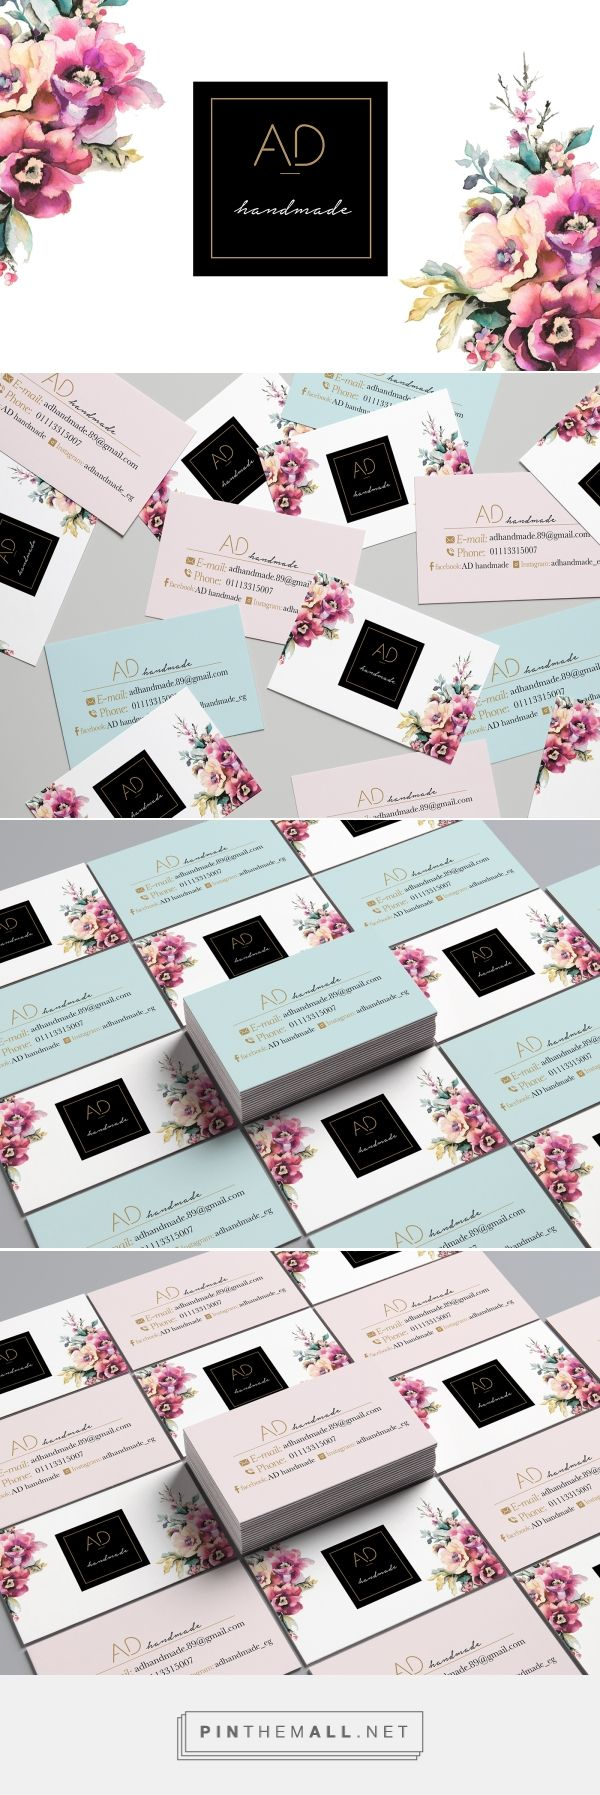 617 Best Business Cards Design Images On Pinterest Business Cards